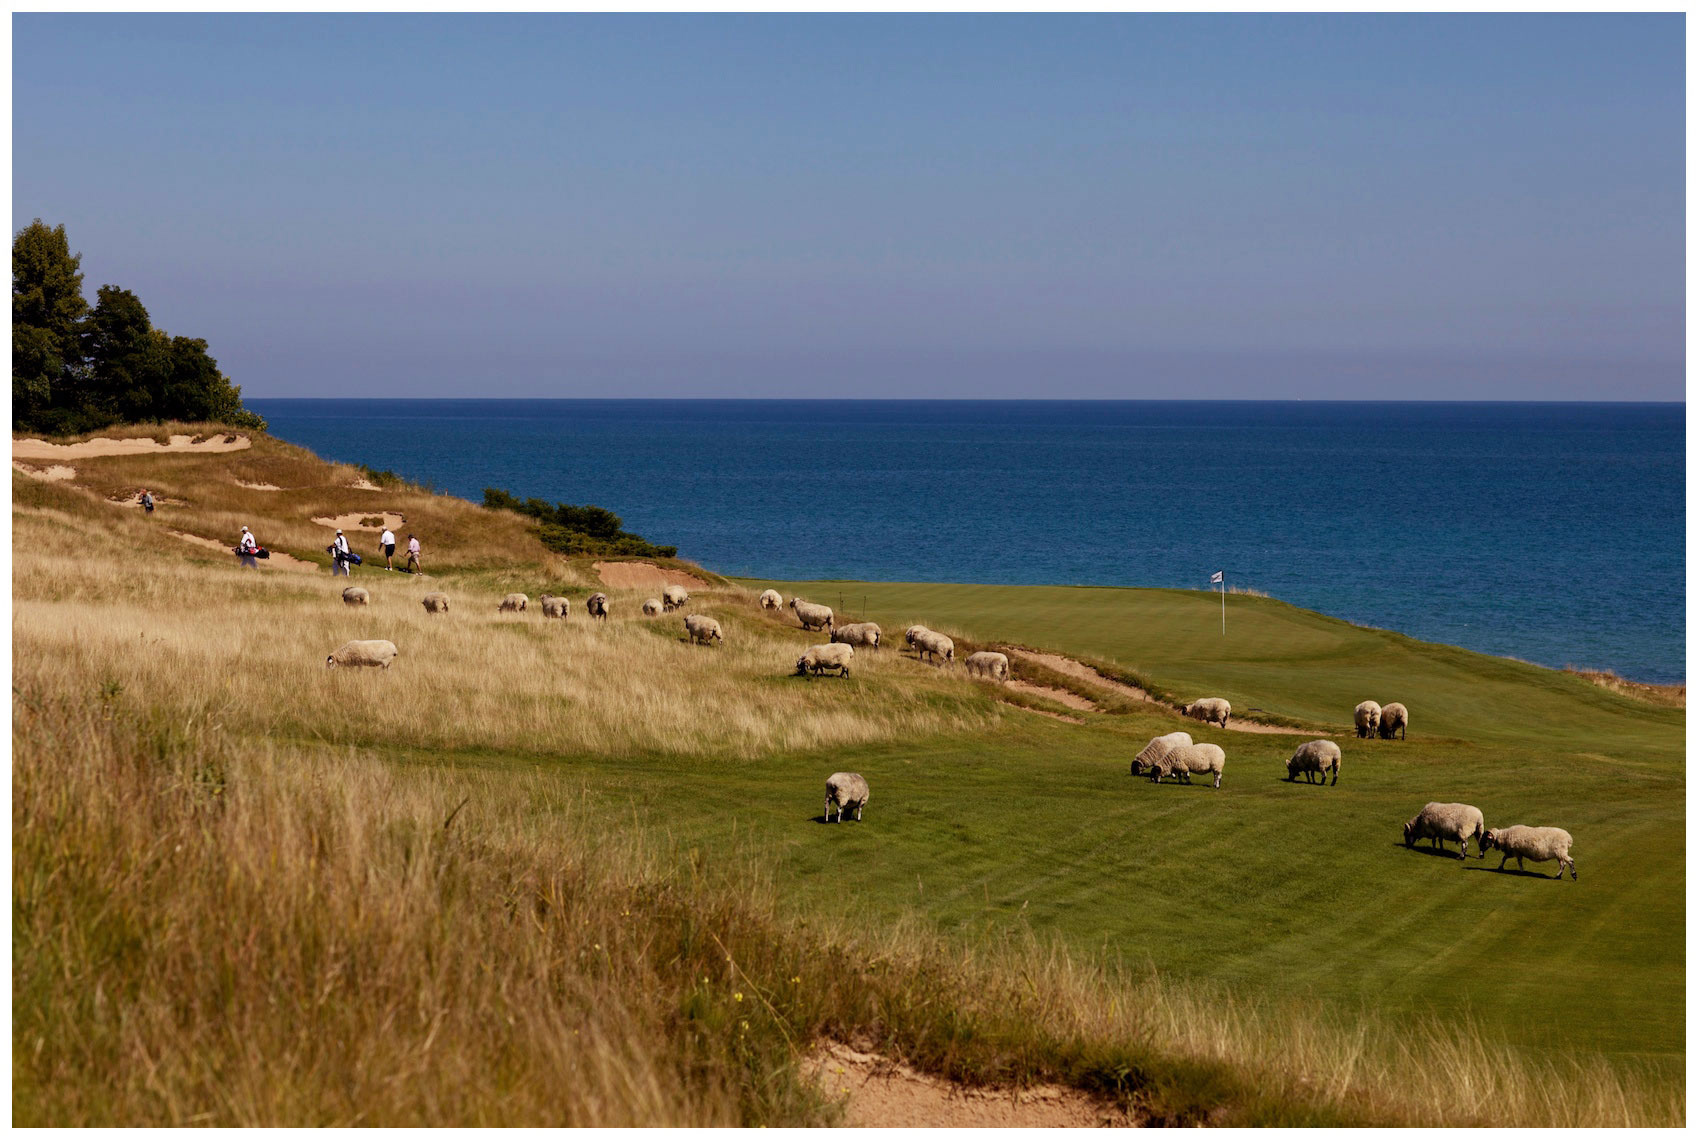 Sheep on the 8th hole at Whistling Straits in Kohler, Wisconsin